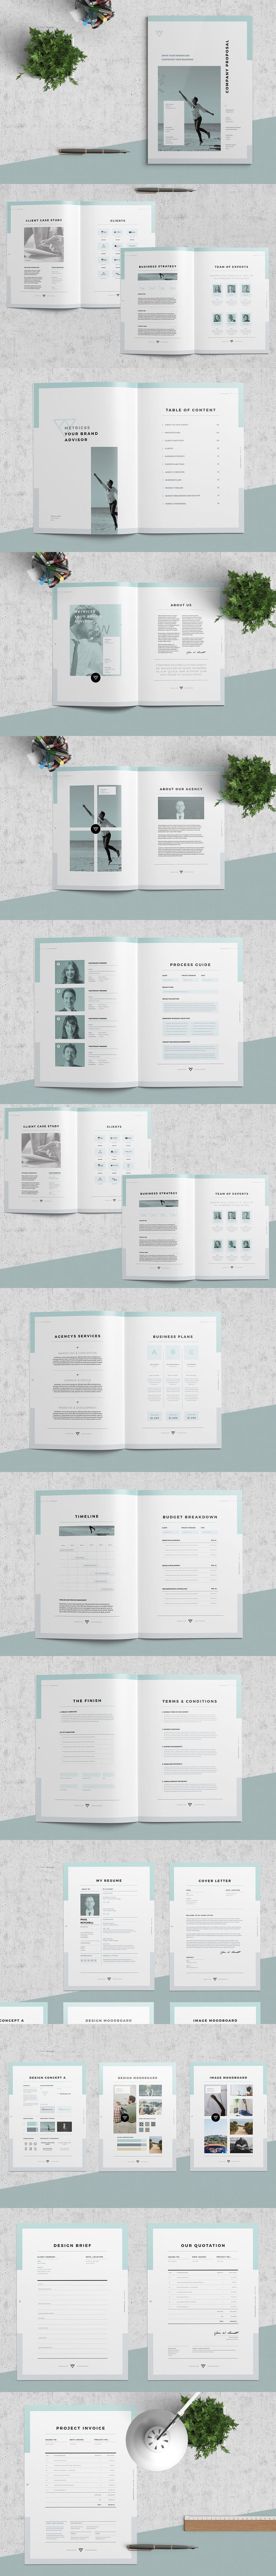 Clean and Professional Proposal Template InDesign INDD - Proposal (20 pages), Resume, Covering Letter, Brief, Quotation / Estimate,  Invoice - Templates. A4 and US Letter